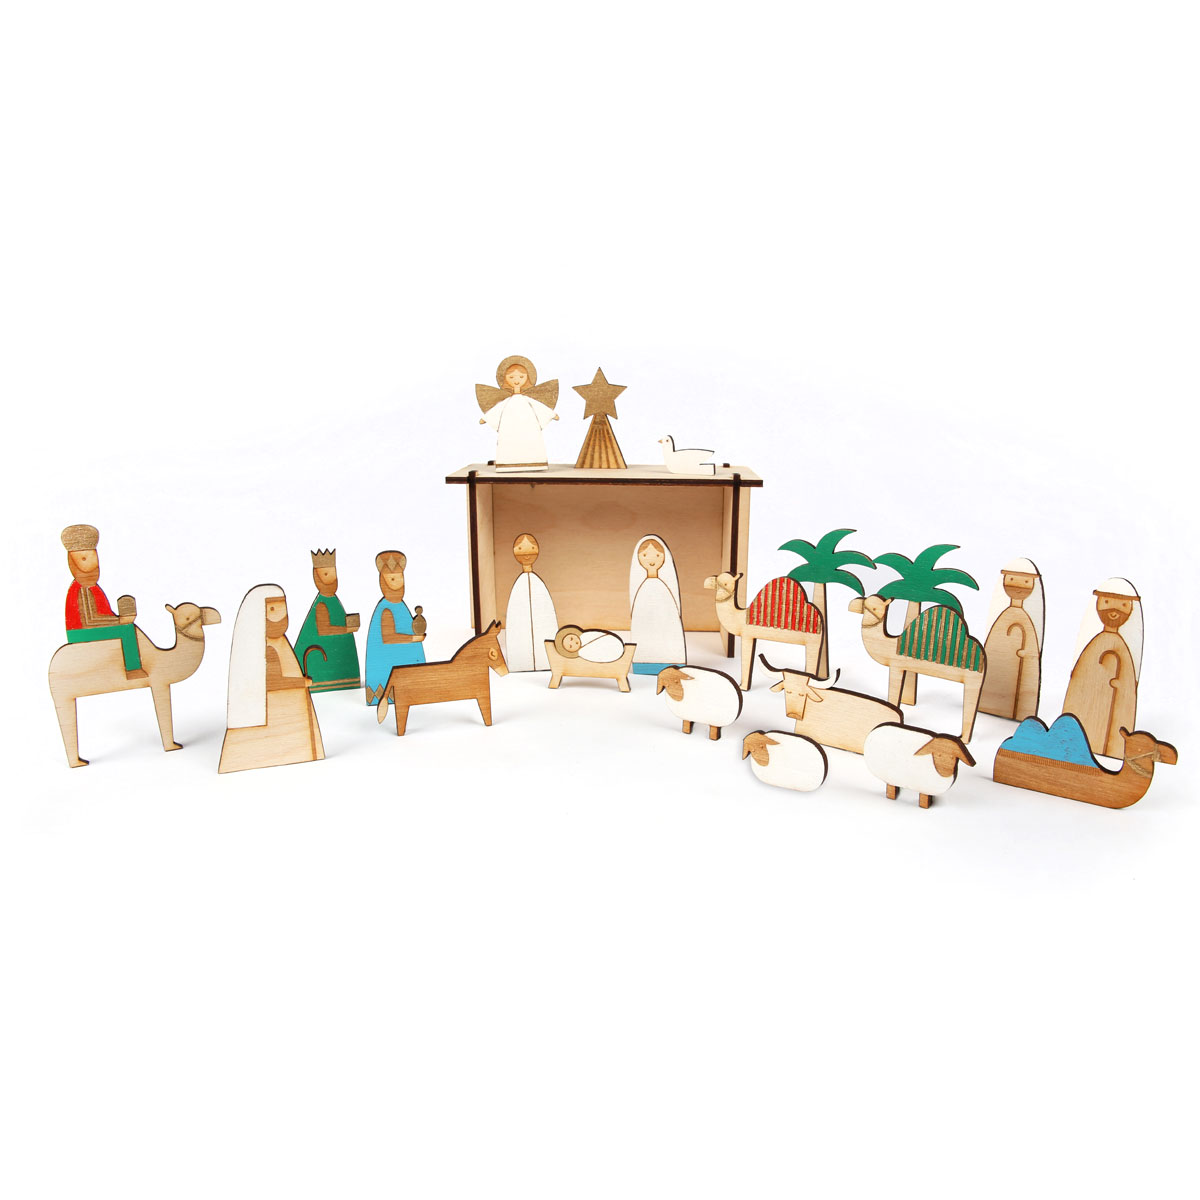 Meri Meri Wooden Nativity Advent Calendar